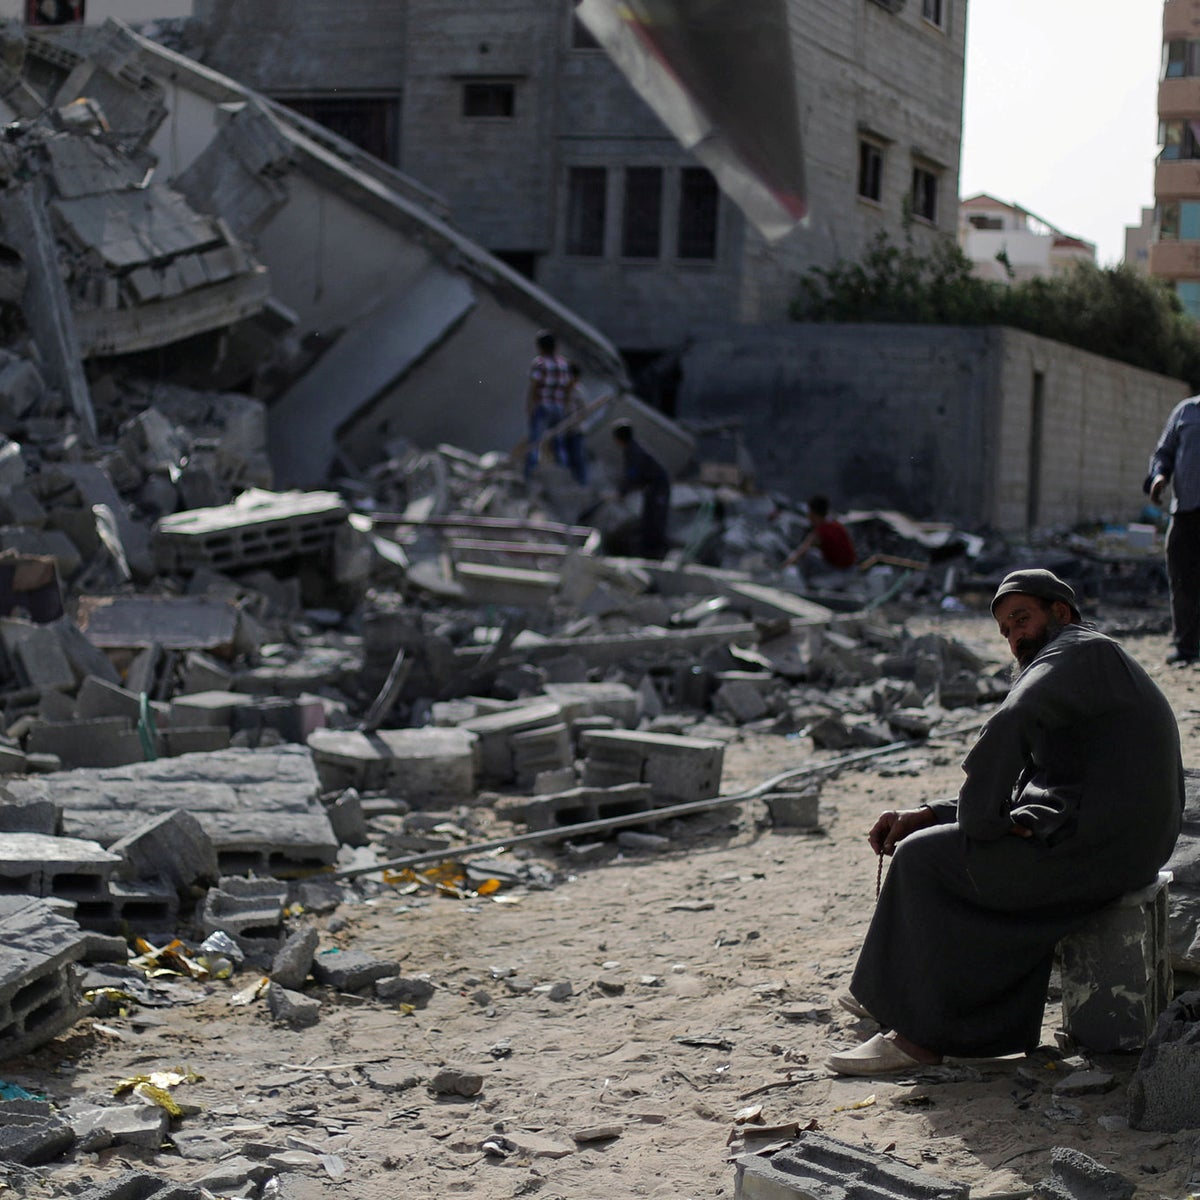 A Palestinian man sits next a building destroyed in an Israeli bombing in Gaza City, May 2019.